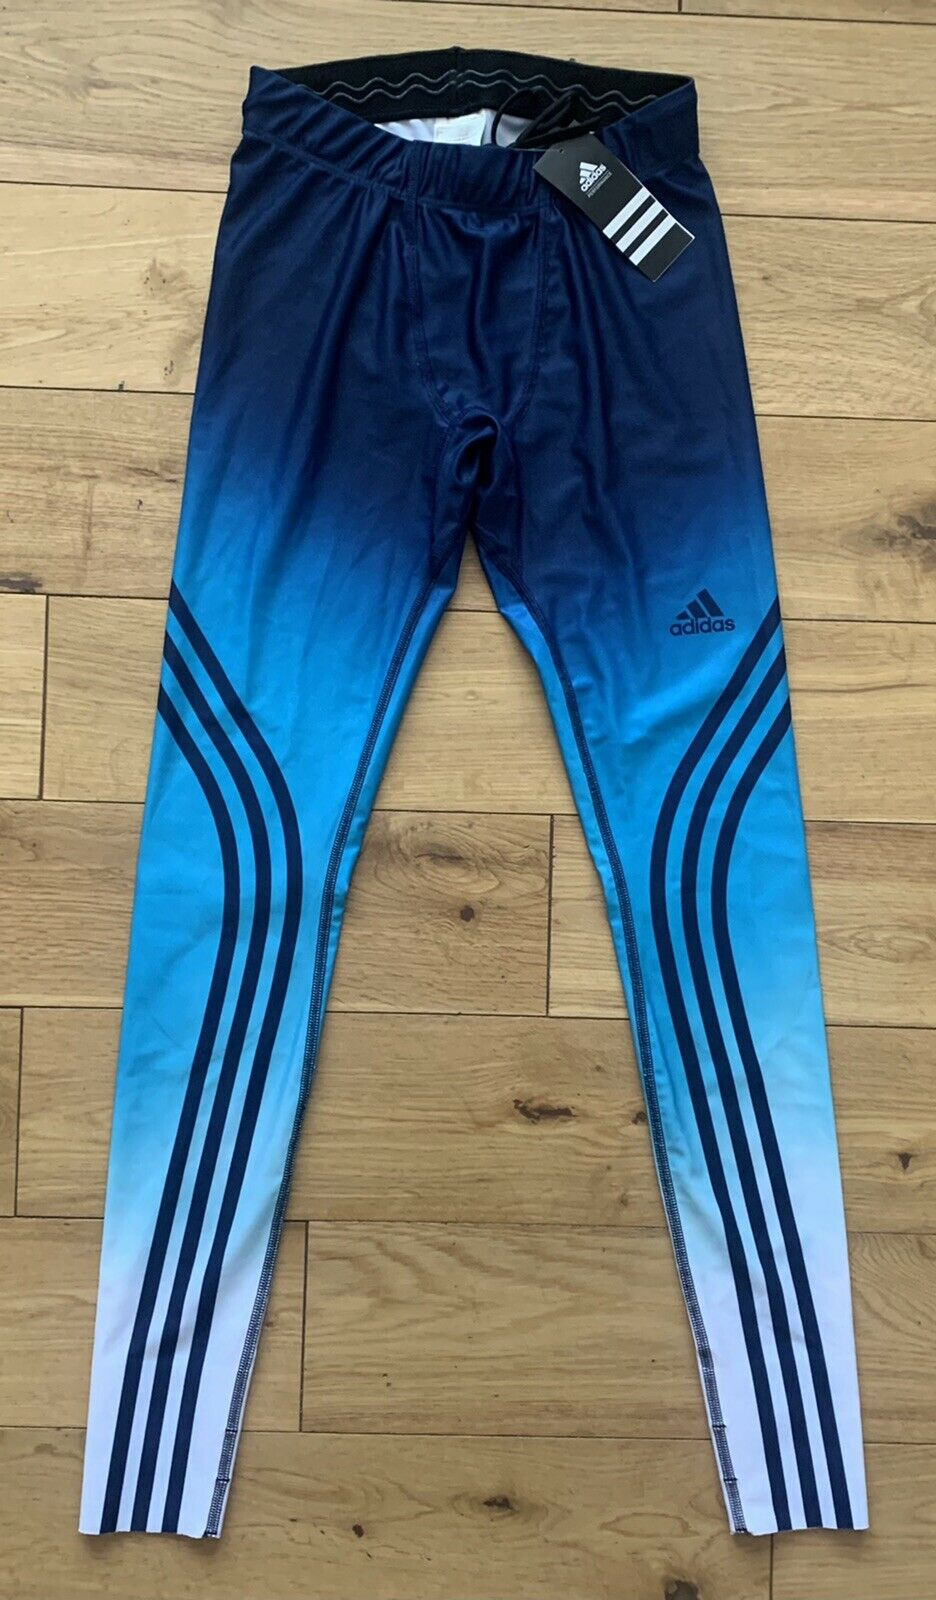 Adidas Men's X Country Climalite Long Ski Race Tight New M36117 Size XS